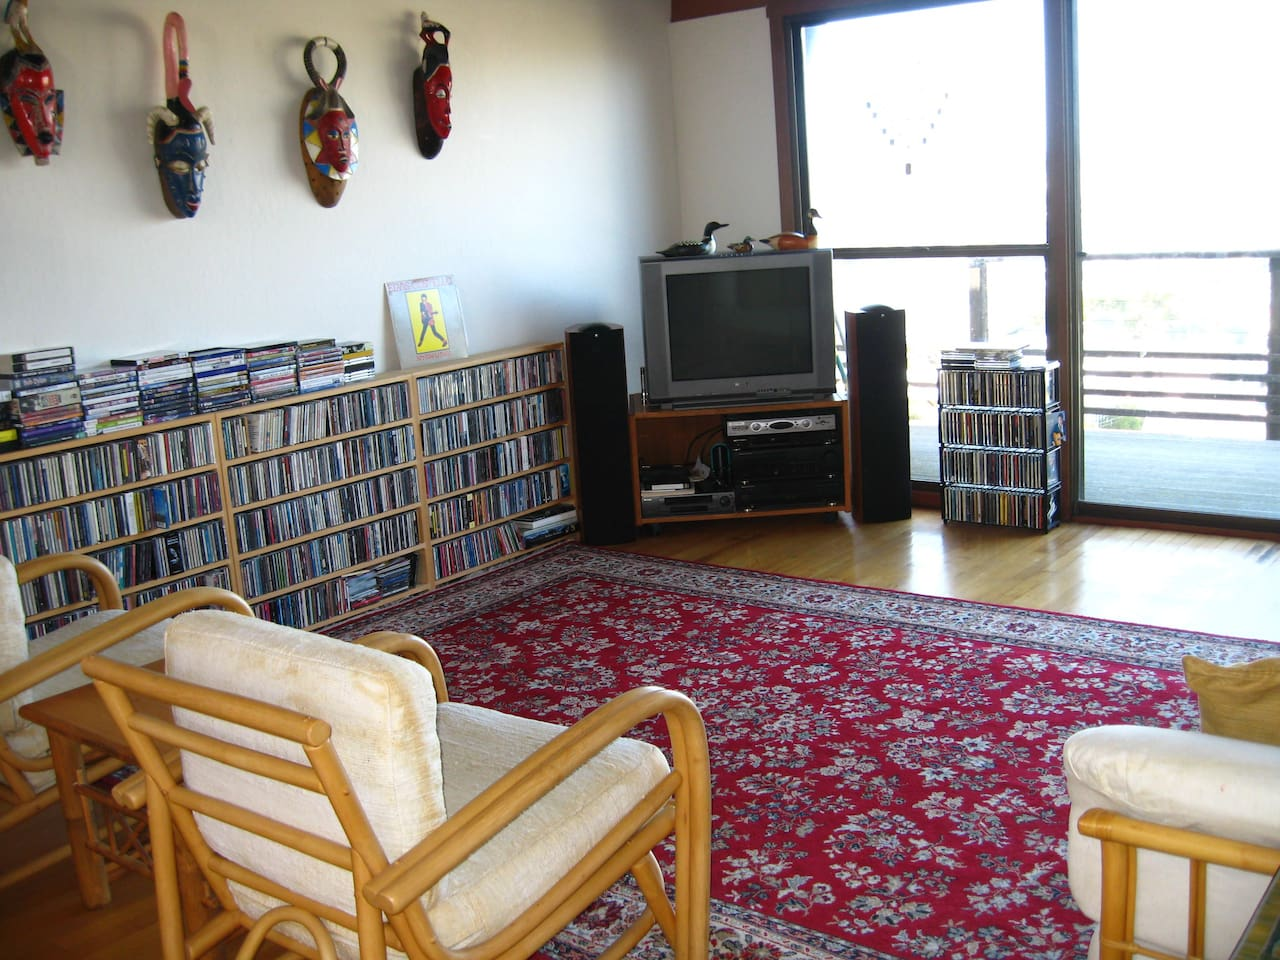 Living Room with lots of music CDs and DVDs.